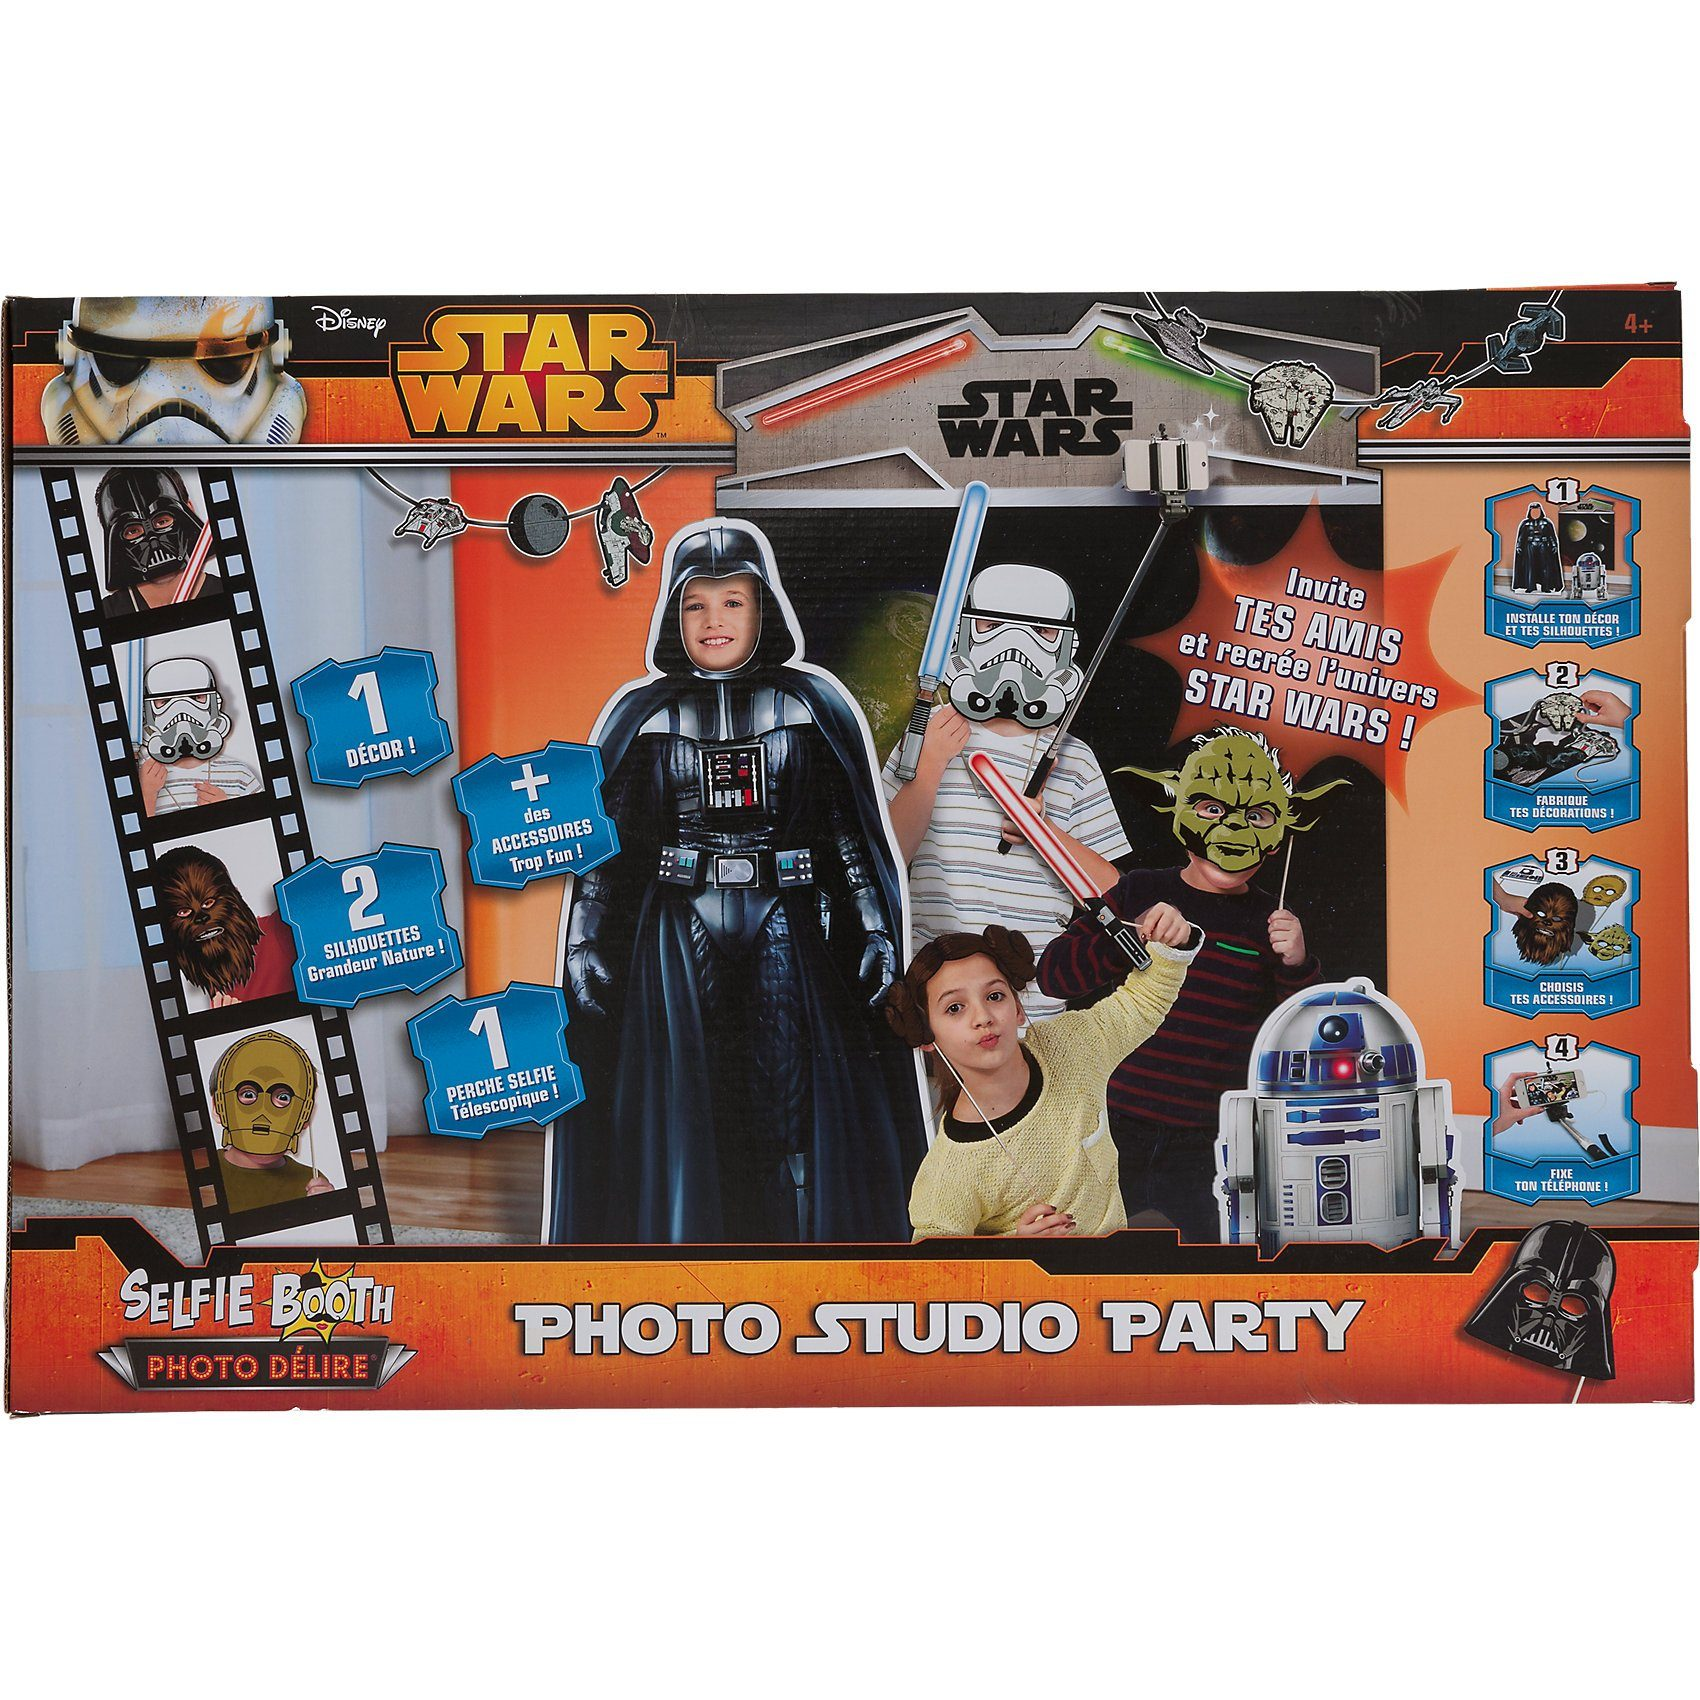 Asmodee Selfie-Set Booth Photo Studio Star Wars